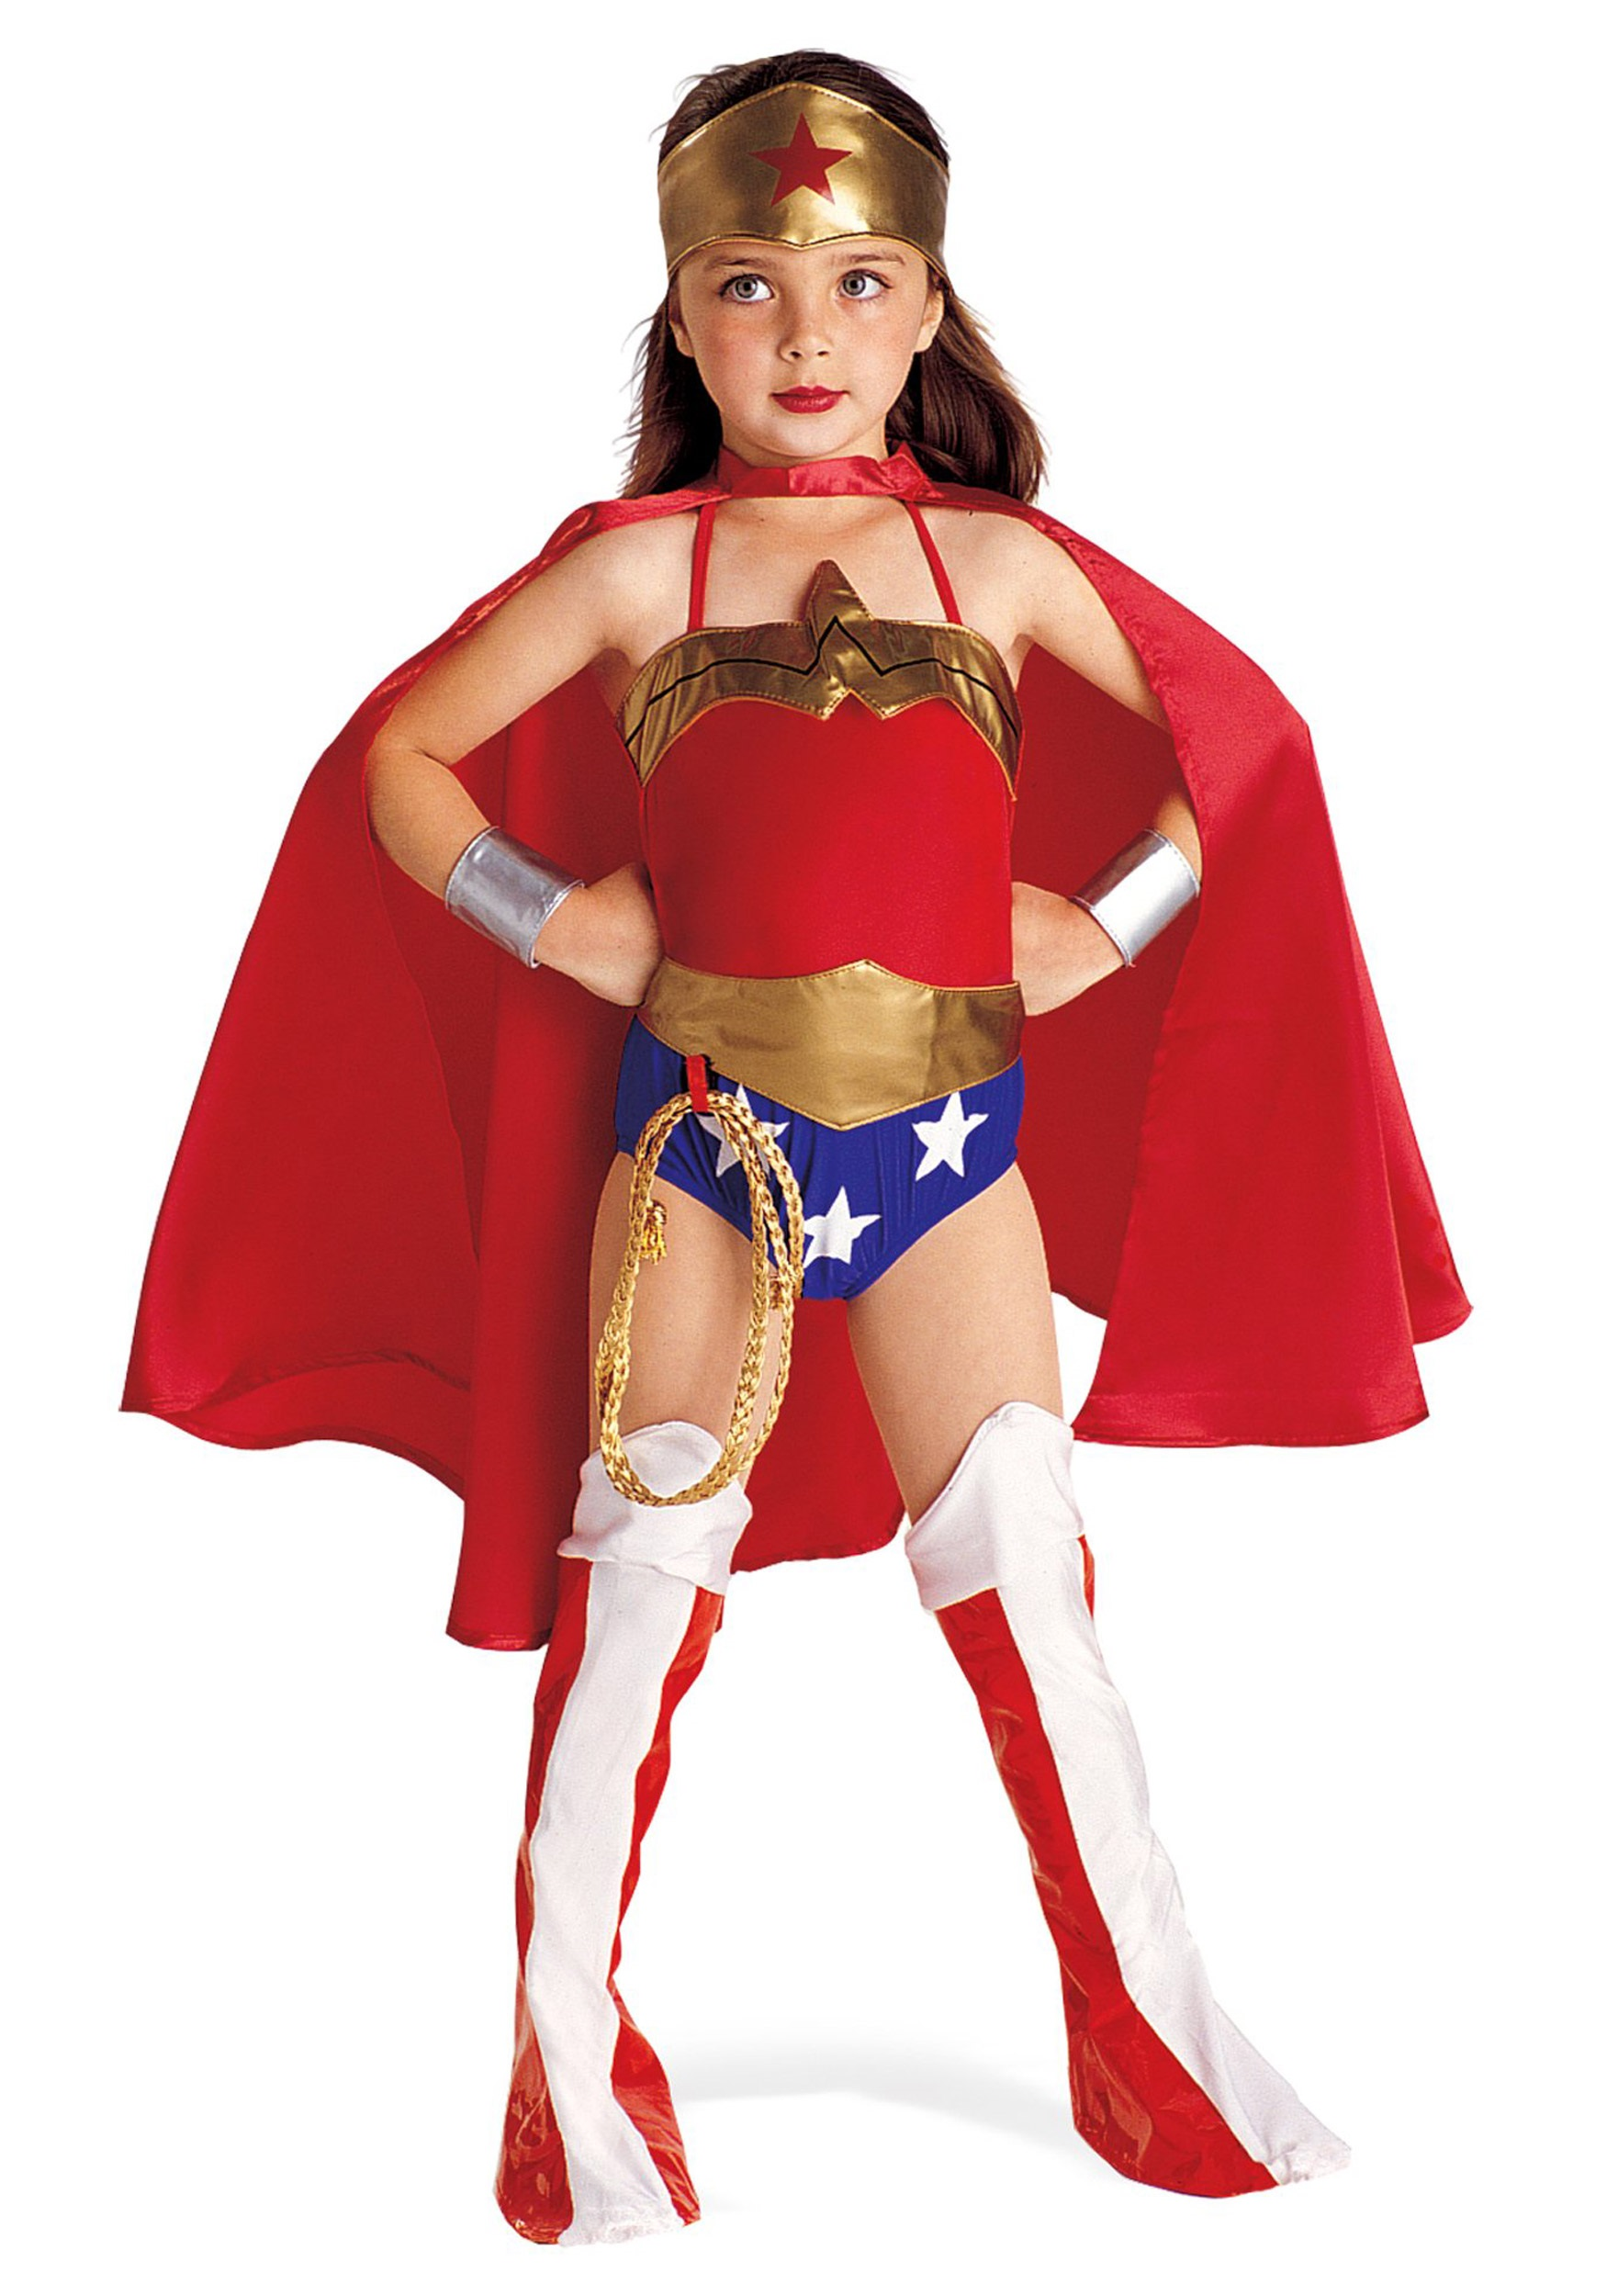 Kids Halloween Costumes Pictures Child Wonder Woman Costume